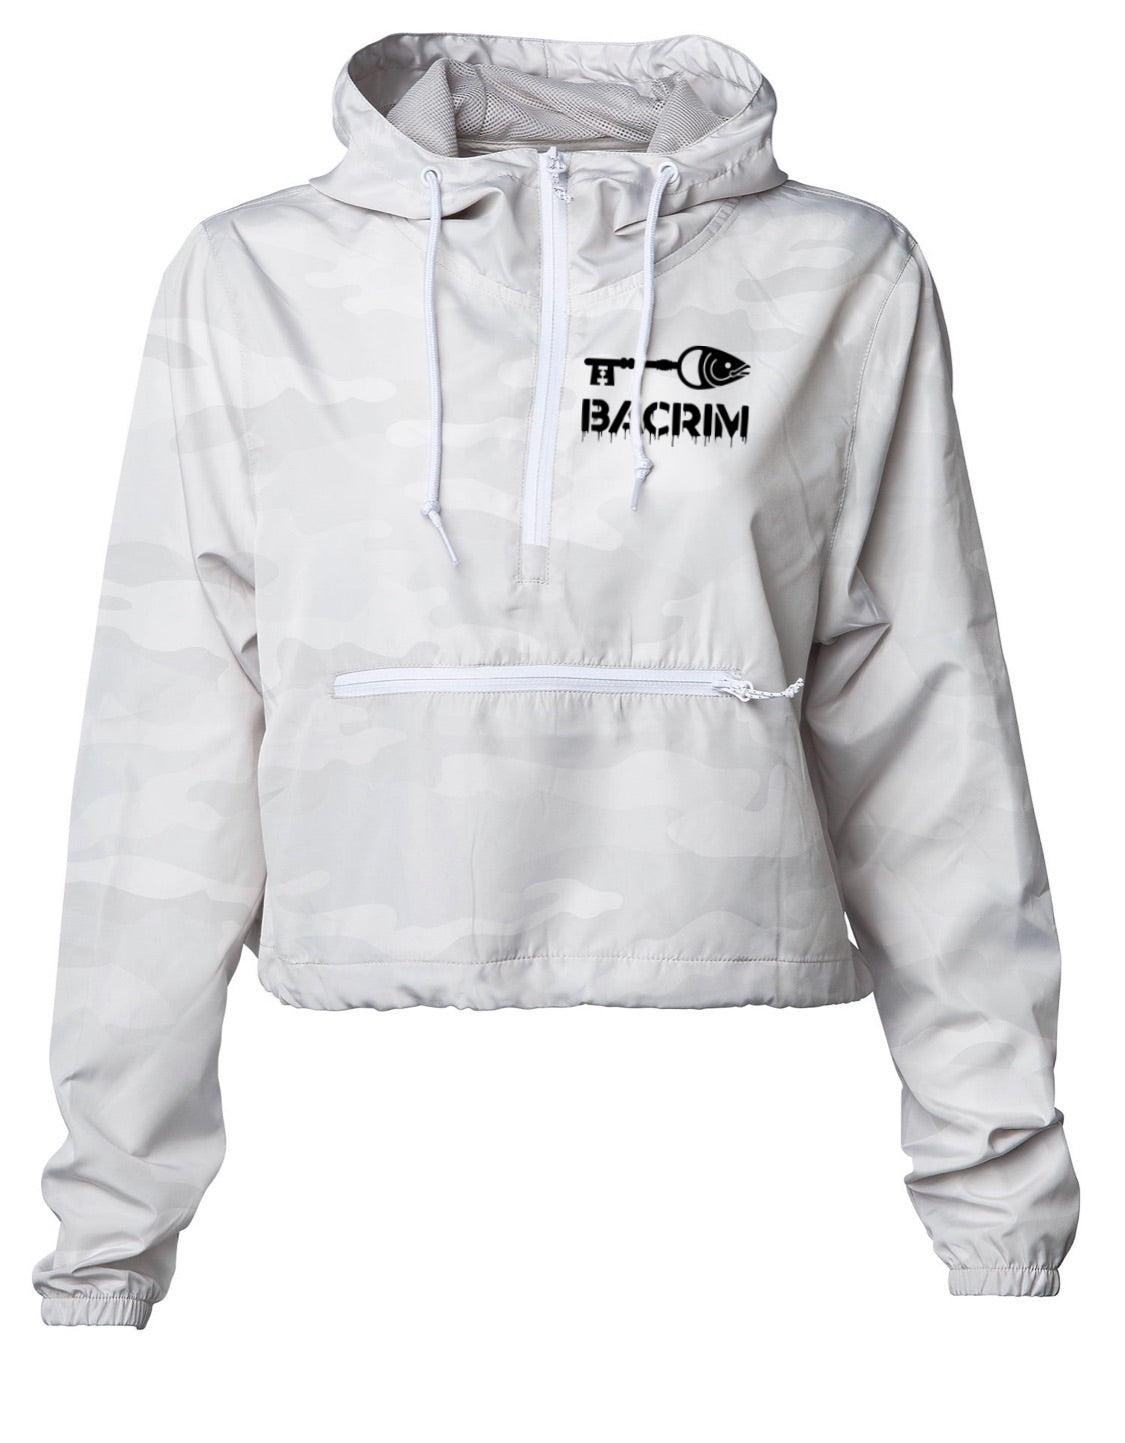 SDLY Hooded Windbreaker Crop Top